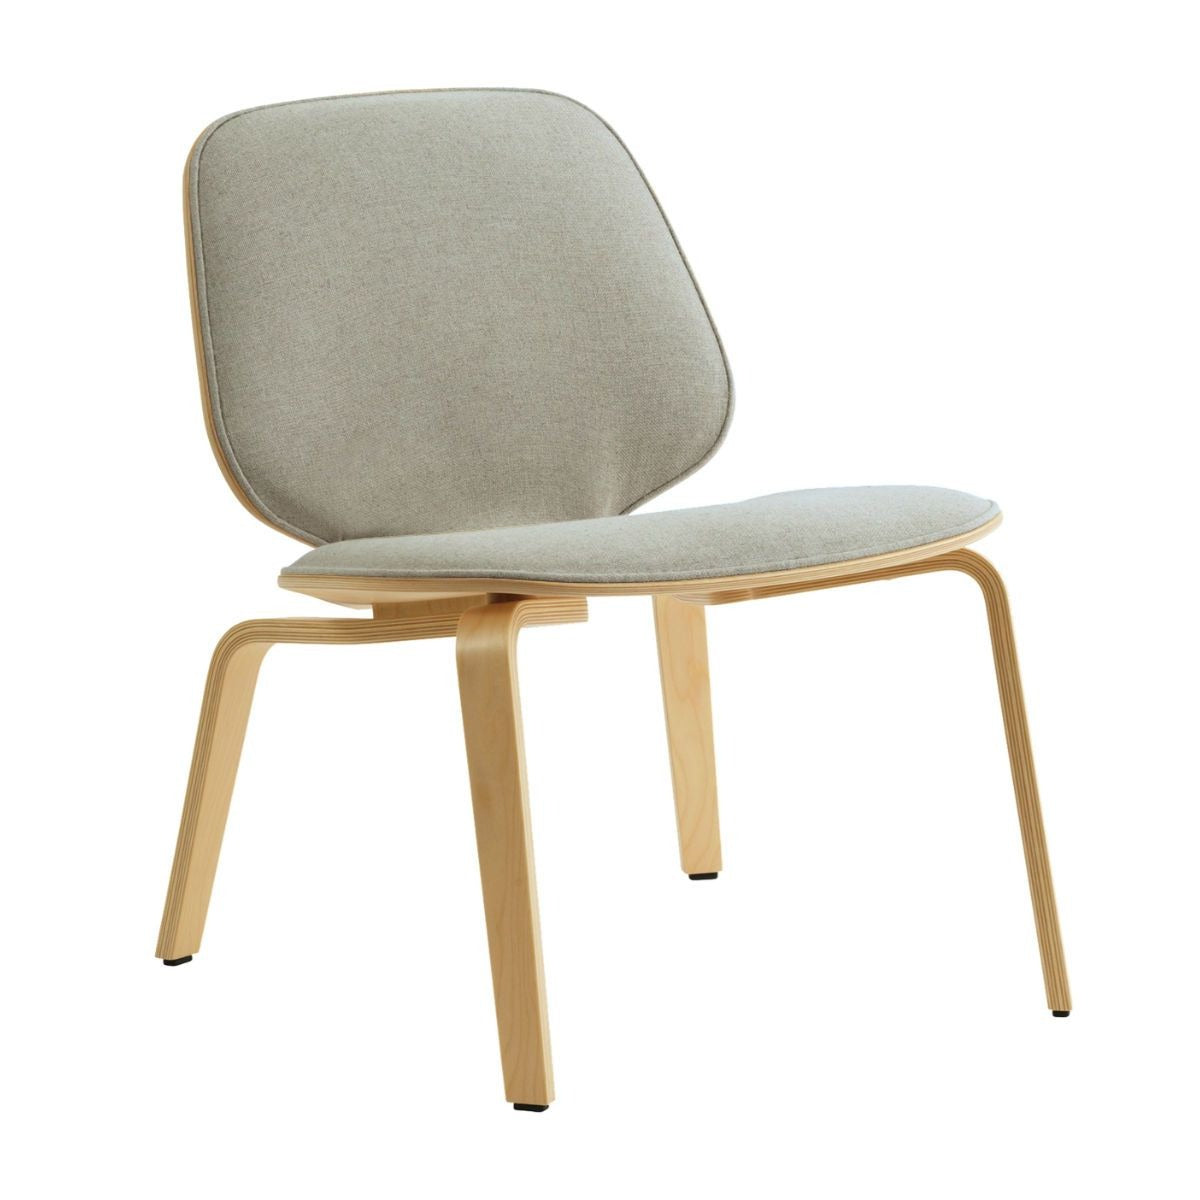 Normann Copenhagen My Chair lounger chair, birch, synergy LDS08